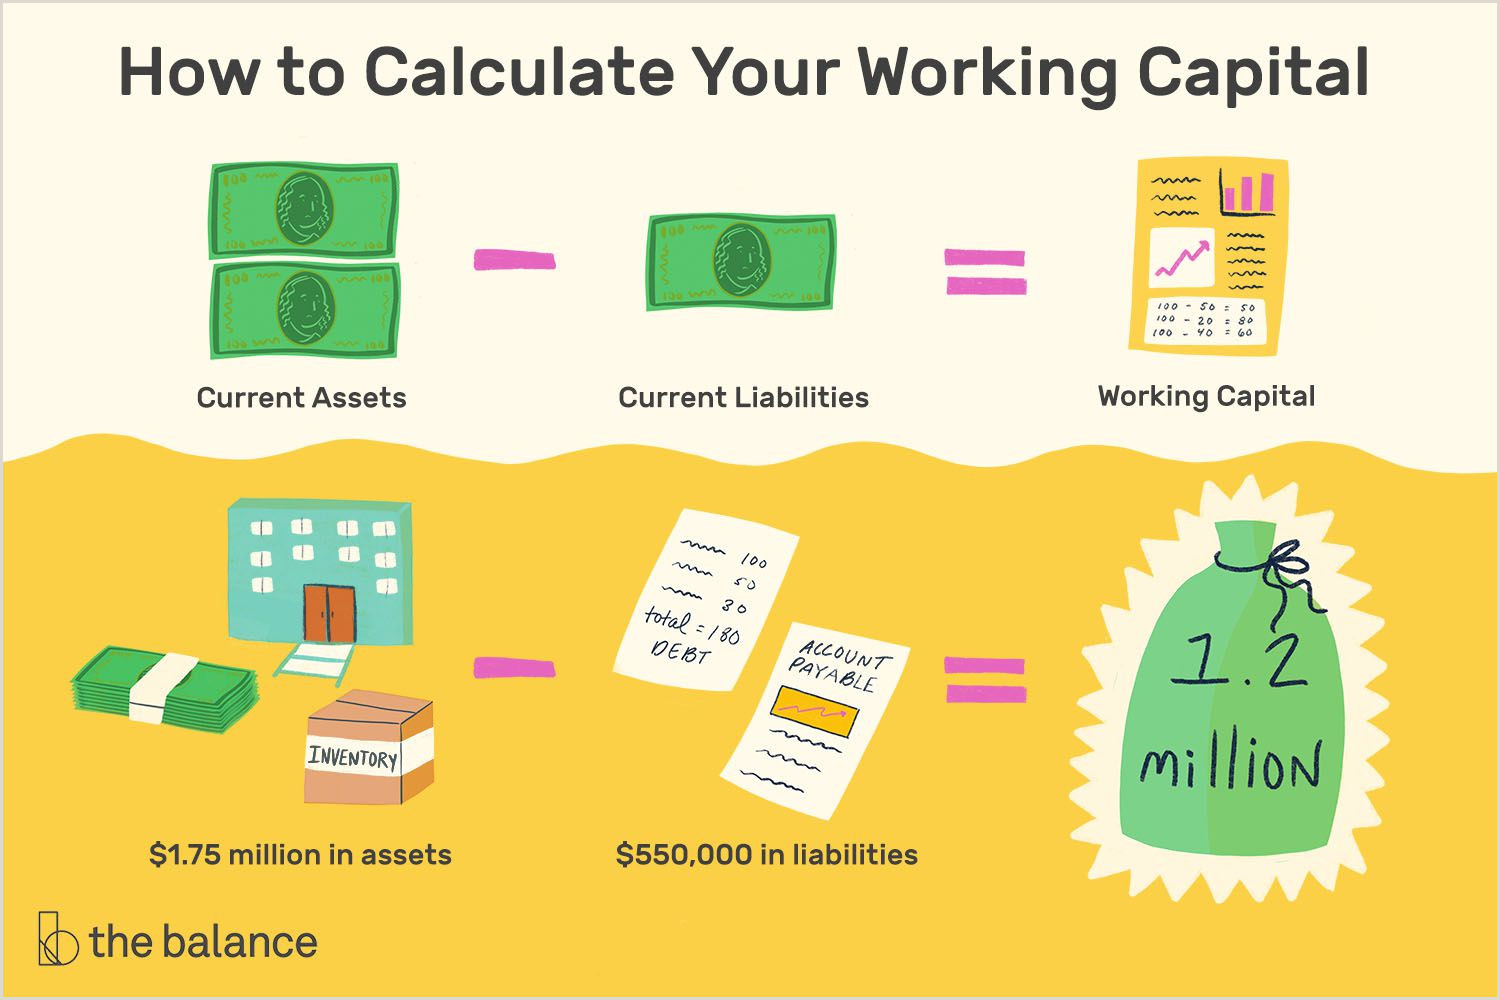 Capital Ones Best Business Cards How To Calculate Working Capital On The Balance Sheet